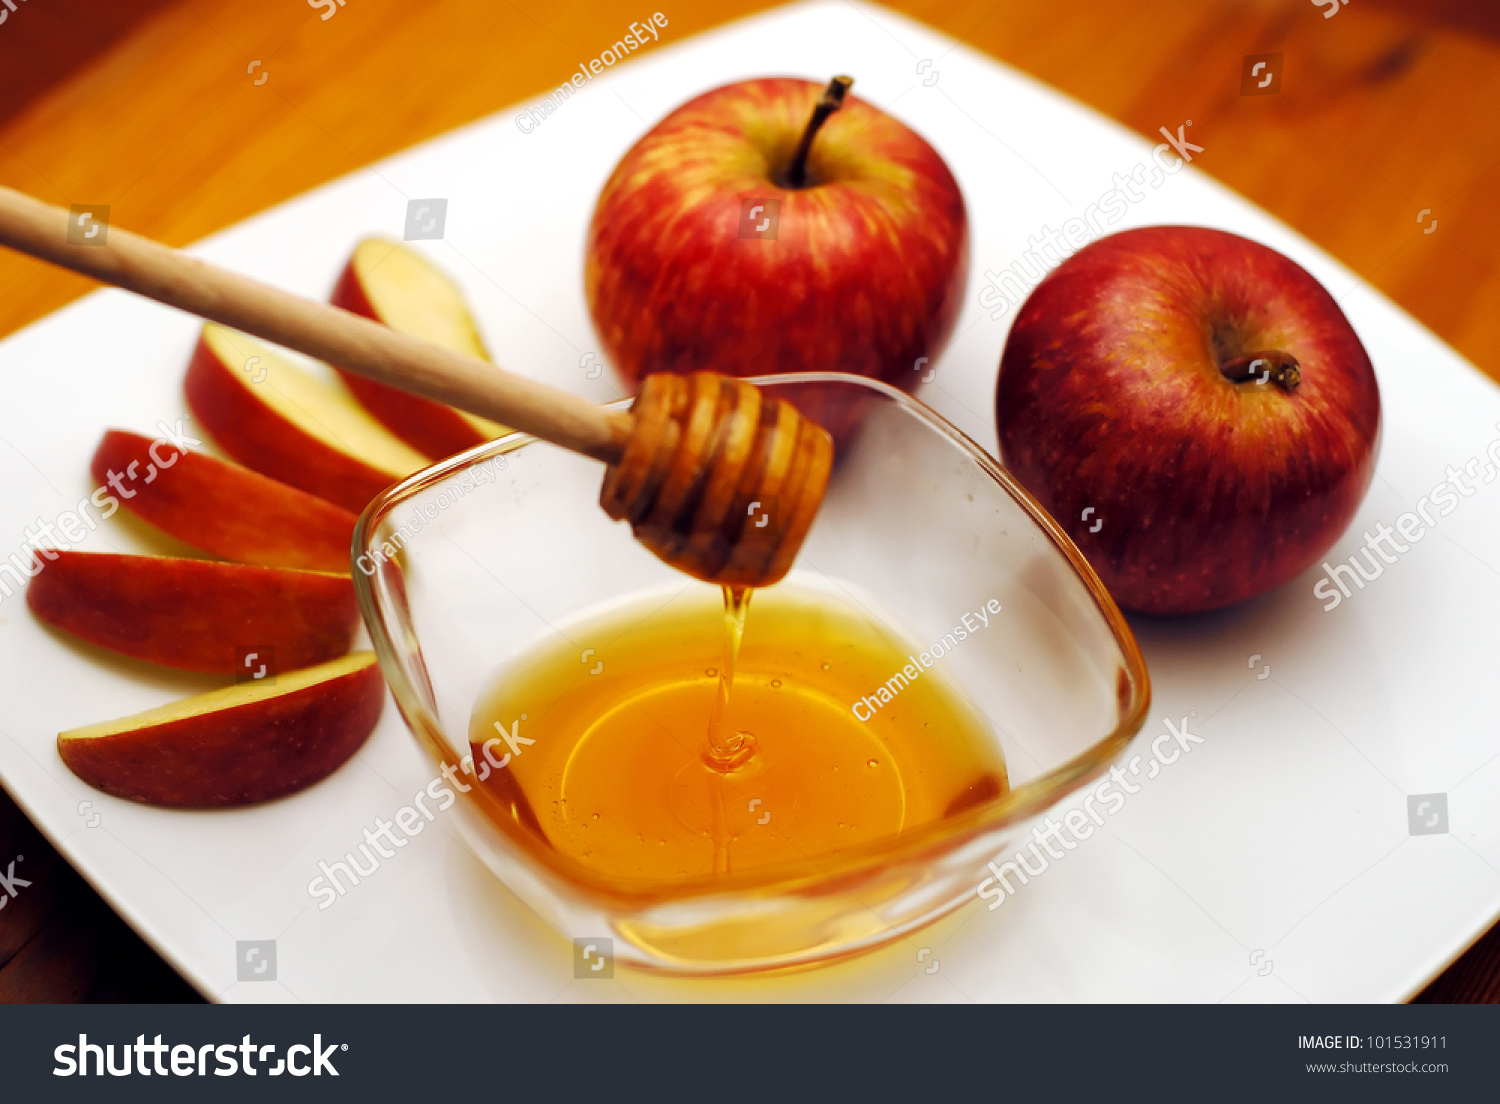 Jewish New Year Rosh Hashanah Apple Stock Photo 101531911 ...